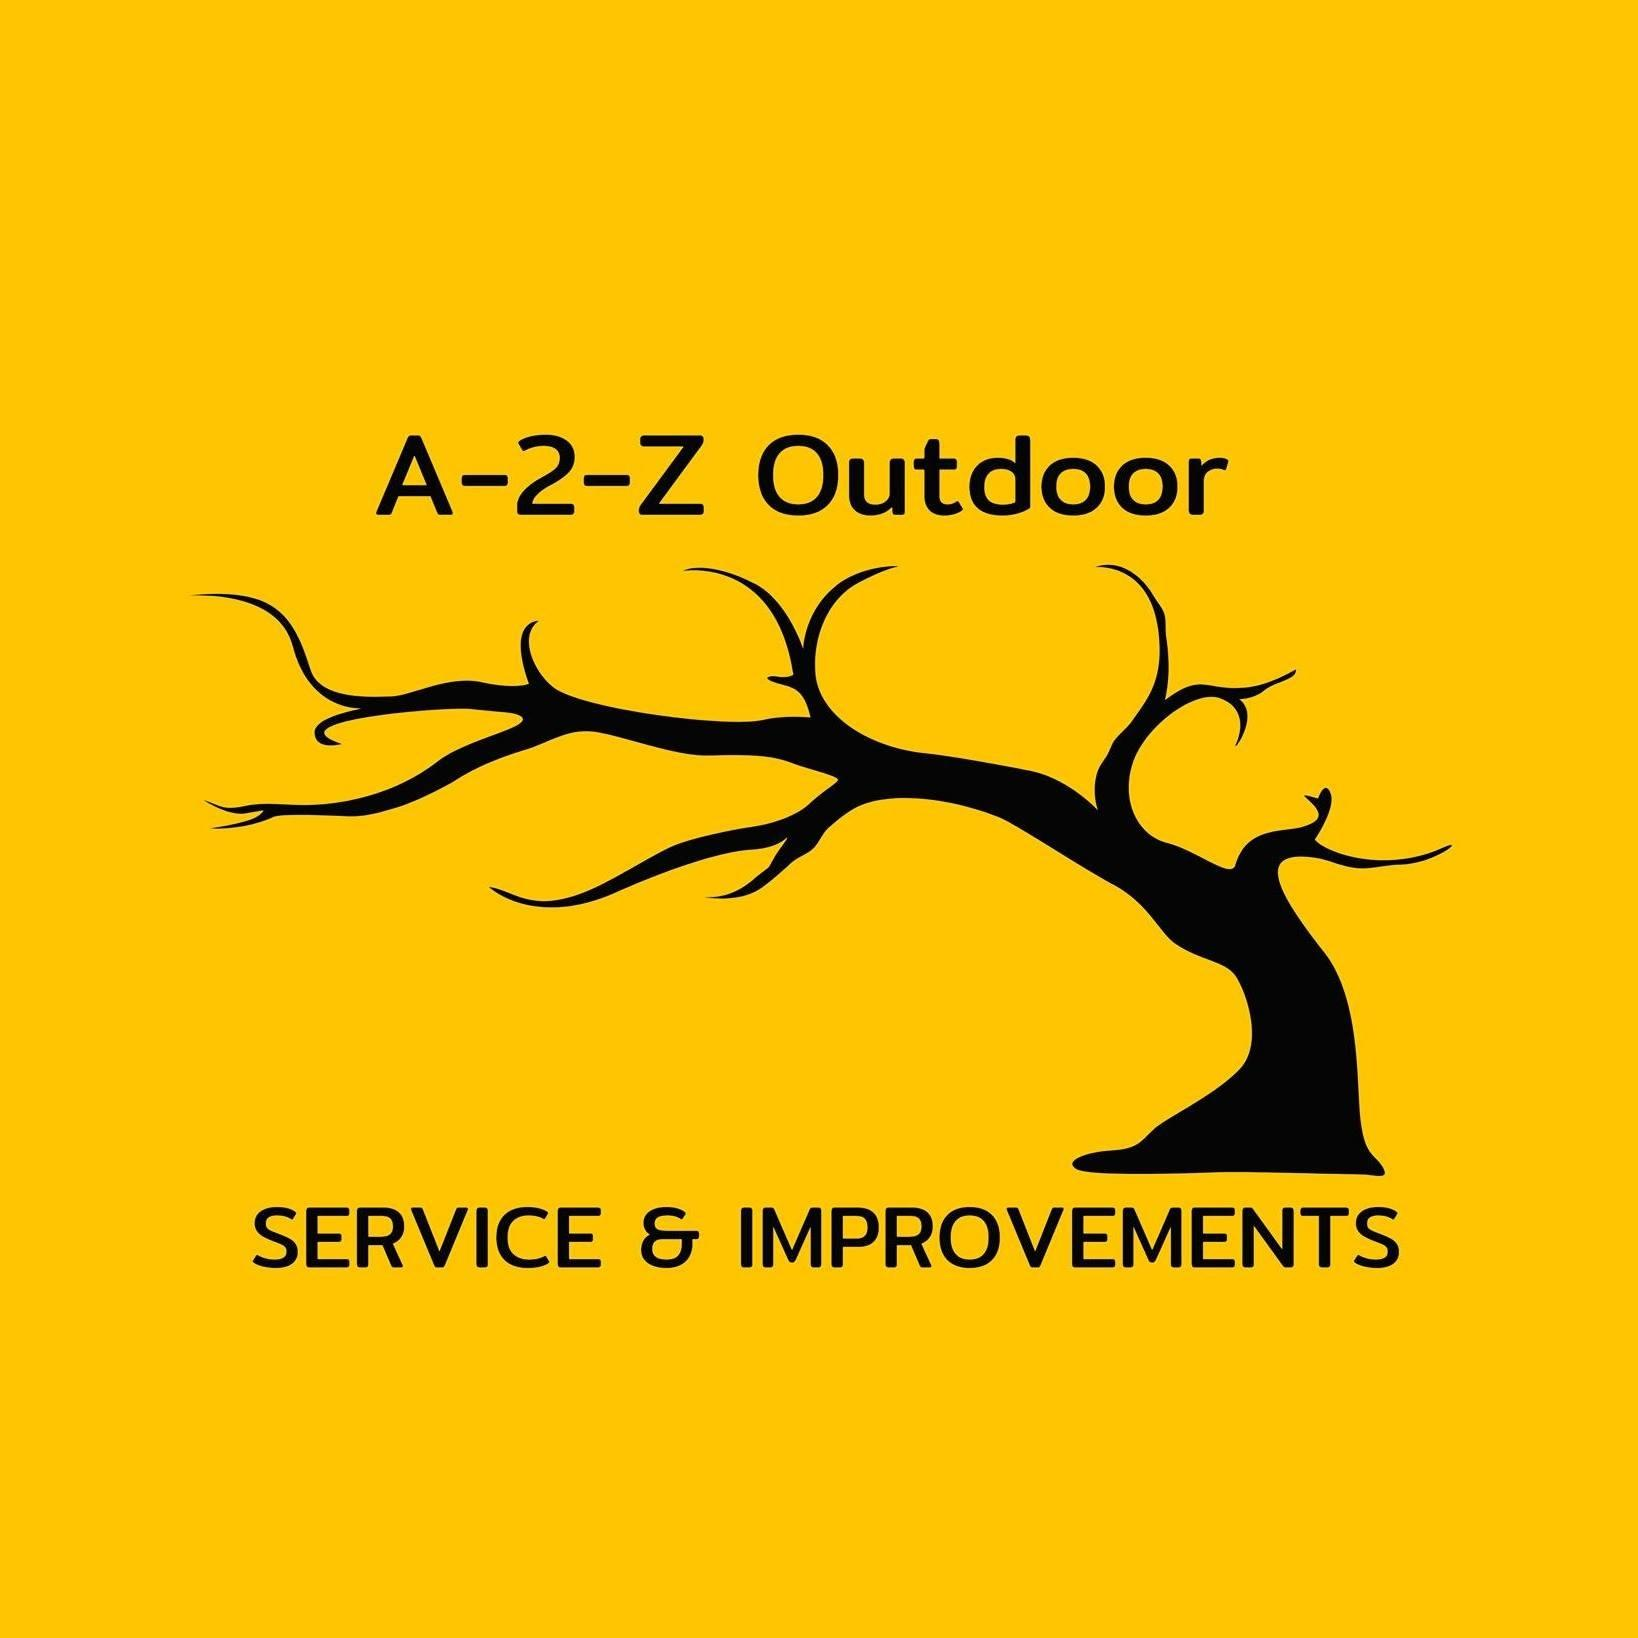 A-2-Z Outdoor Services & Improvements